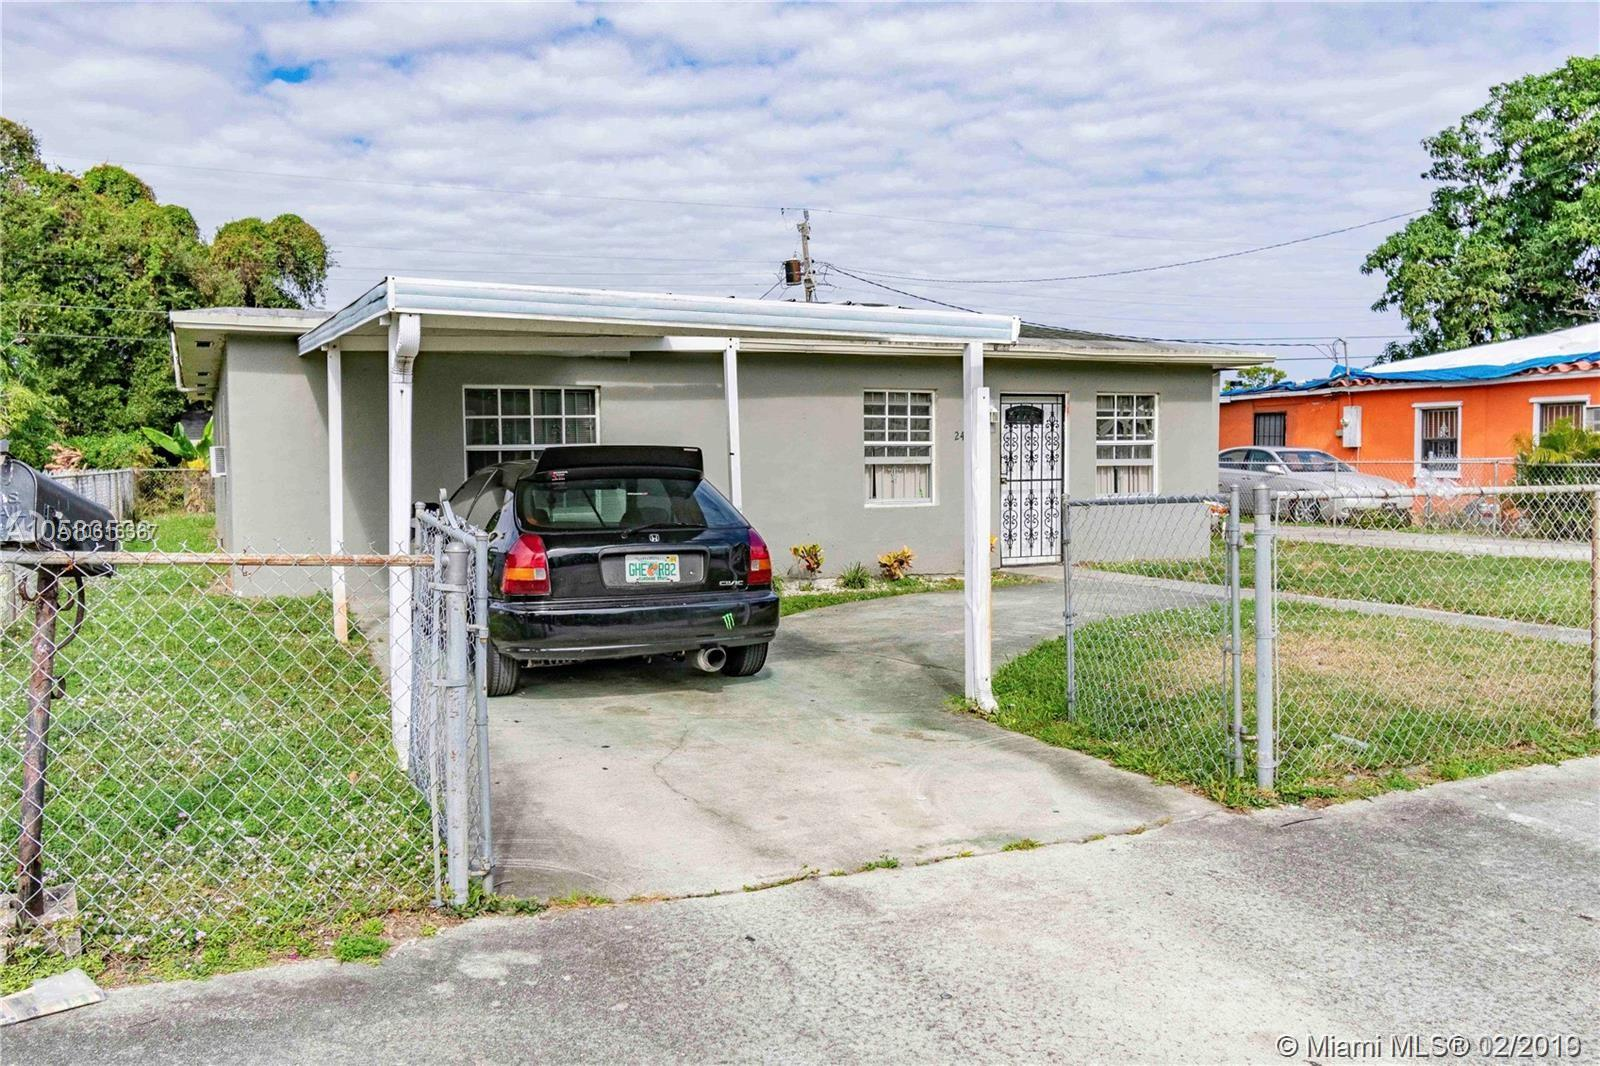 2451 NW 152nd Ter, Miami Gardens, FL 33054